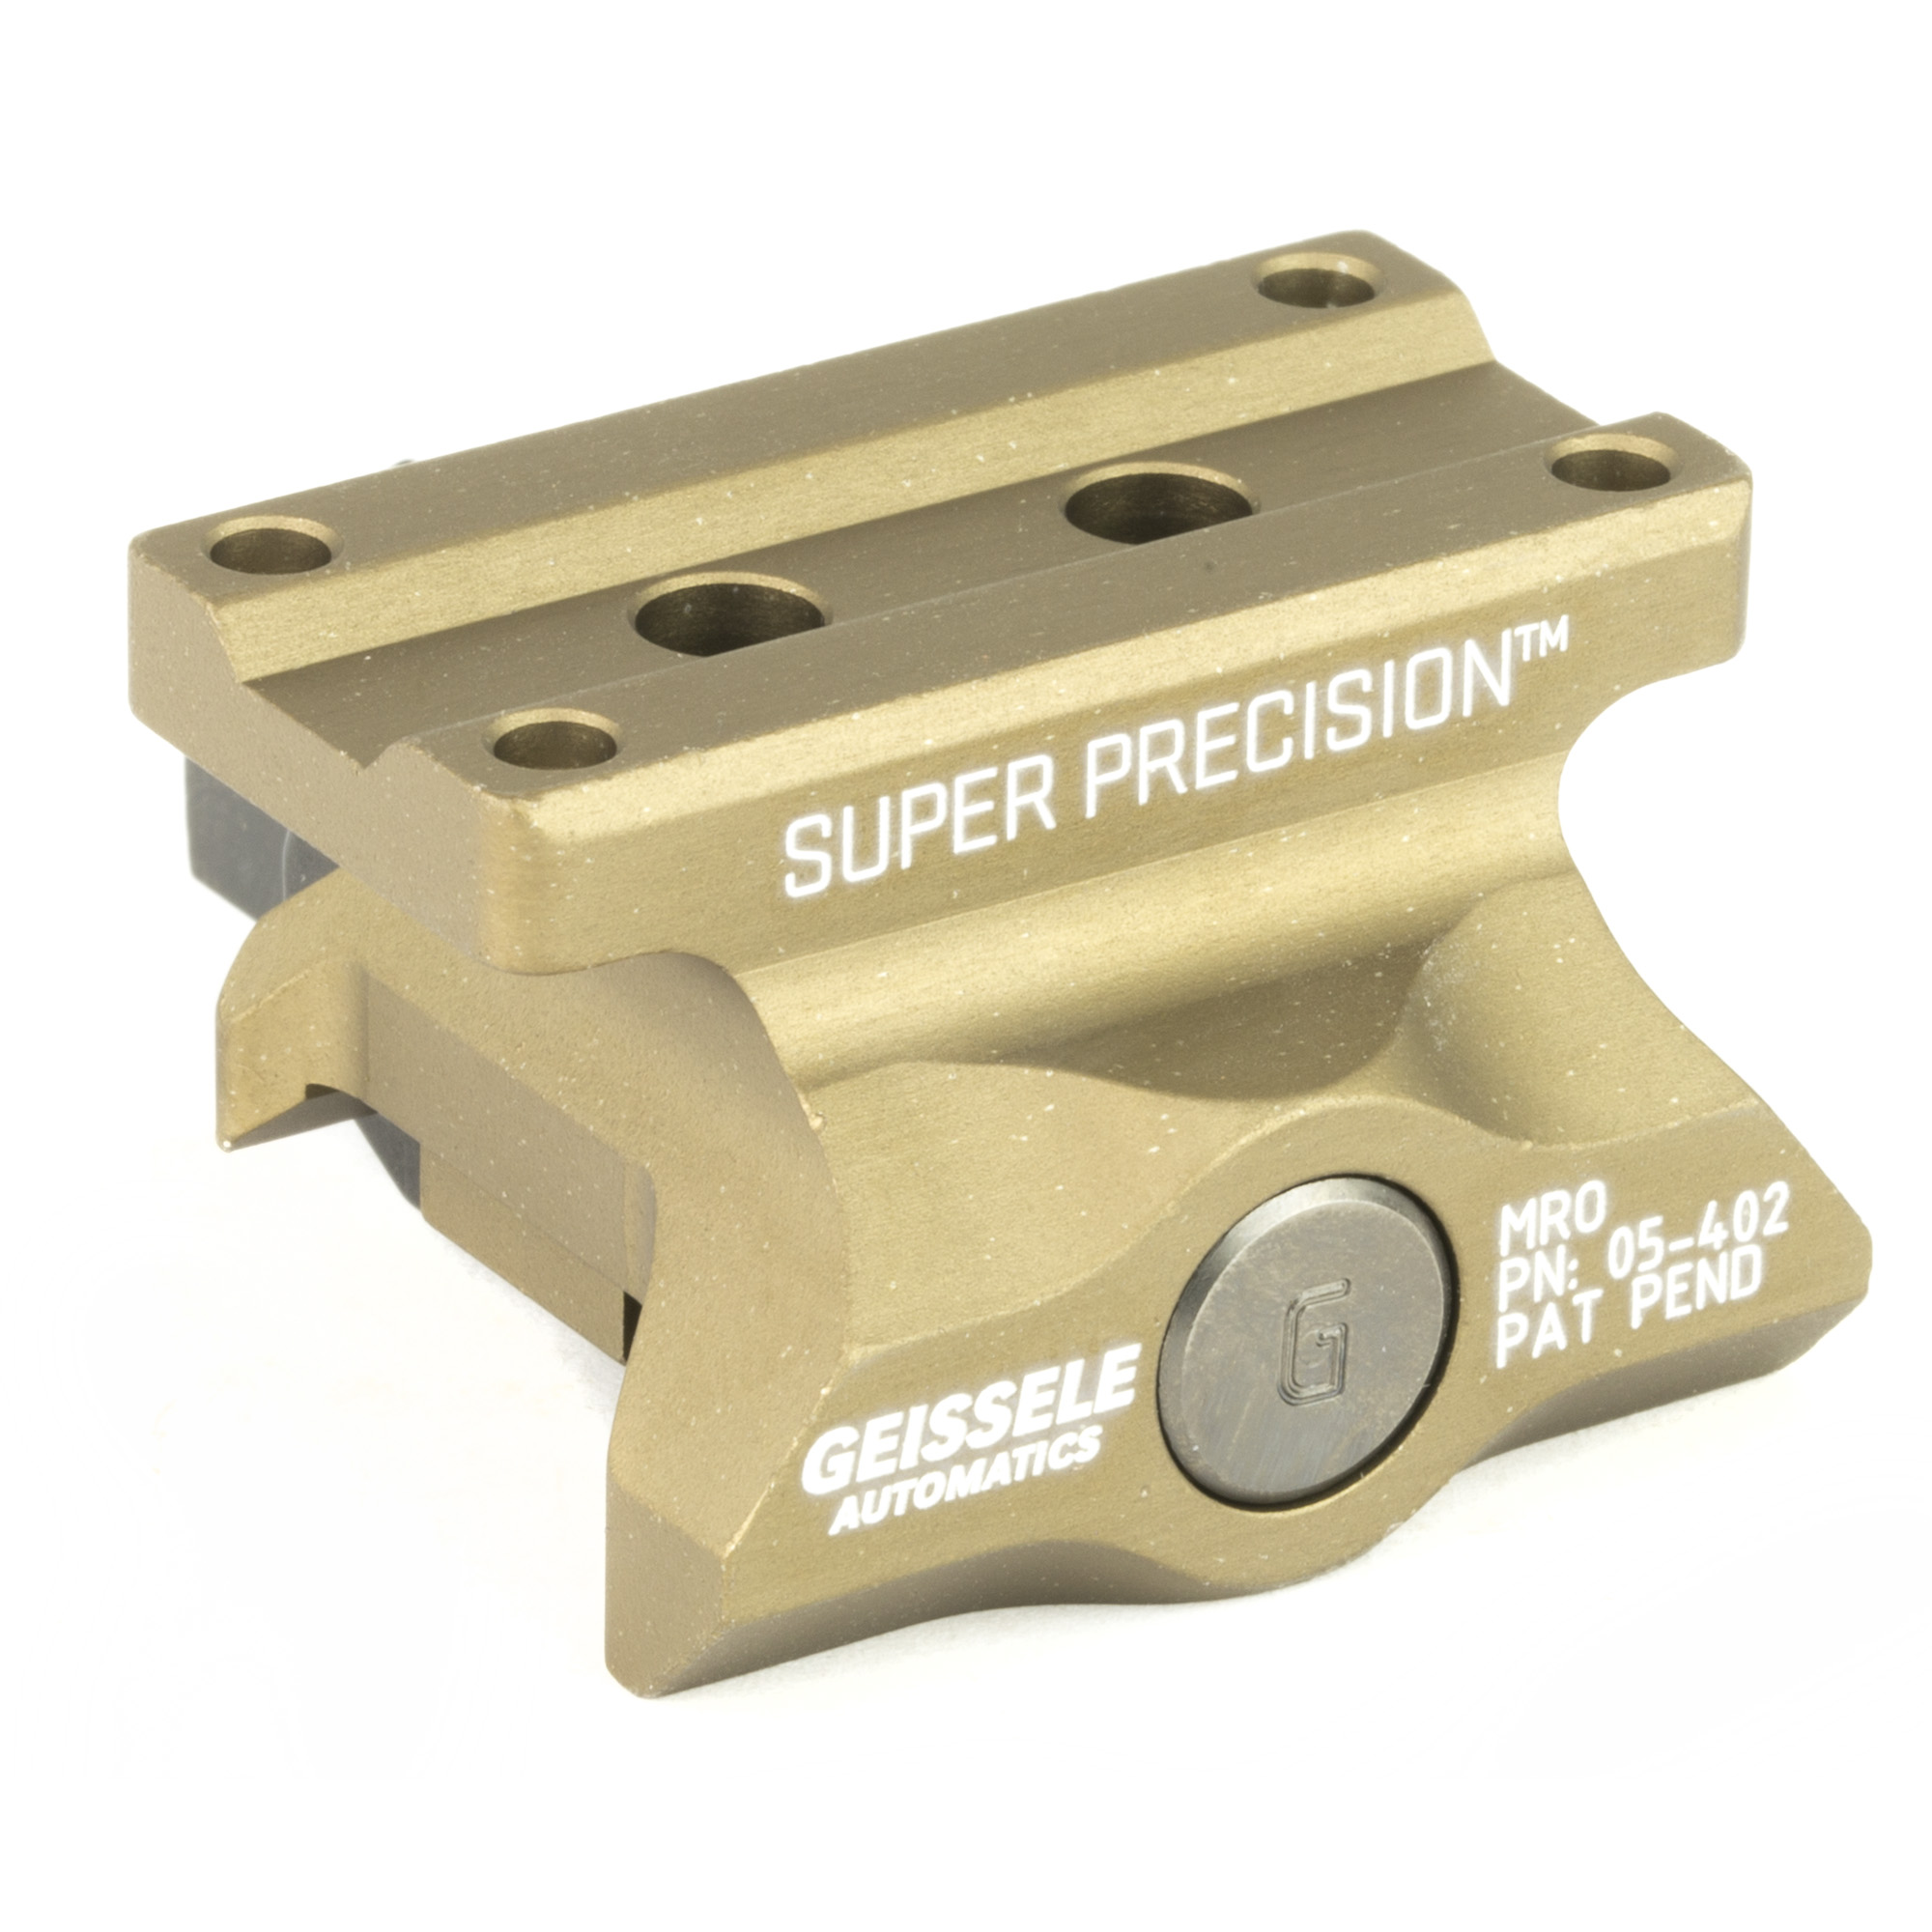 """The Super Precision MRO Series was developed specifically to work with the Trijicon MRO and like mounted red dot optics. These mounts are precision machined from a single piece of 7075-T6 high strength aluminum. Utilizing Geissele's update of the classic nut and bolt method"""" this mount will attach your red dot to your weapon with 1""""400 pounds of clamping force"""" and features 3 shear lugs for maximum rigidity and return to zero."""